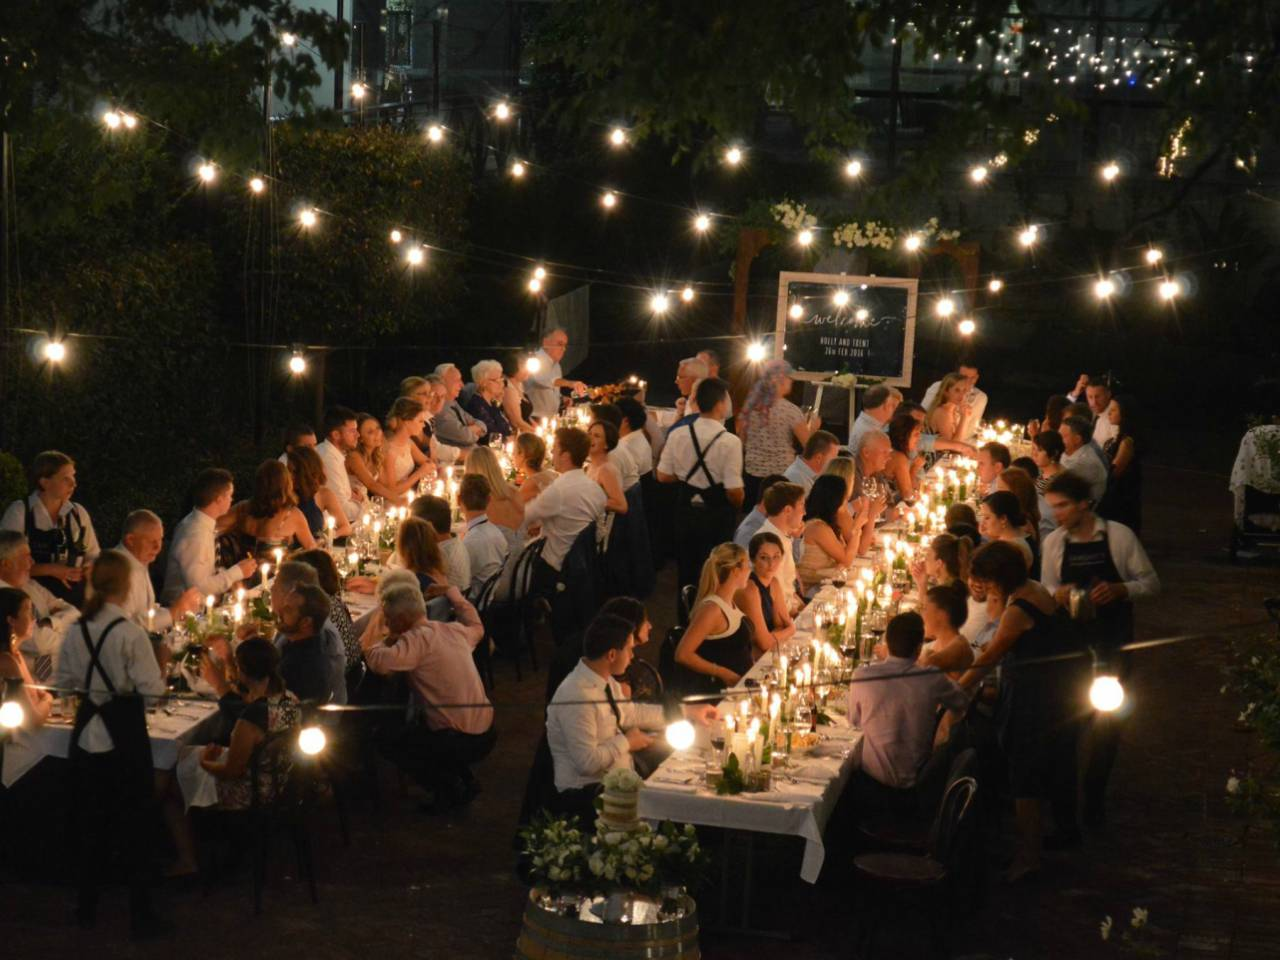 Long tables at night time with festoon lighting and guests sitting, enjoying the private function